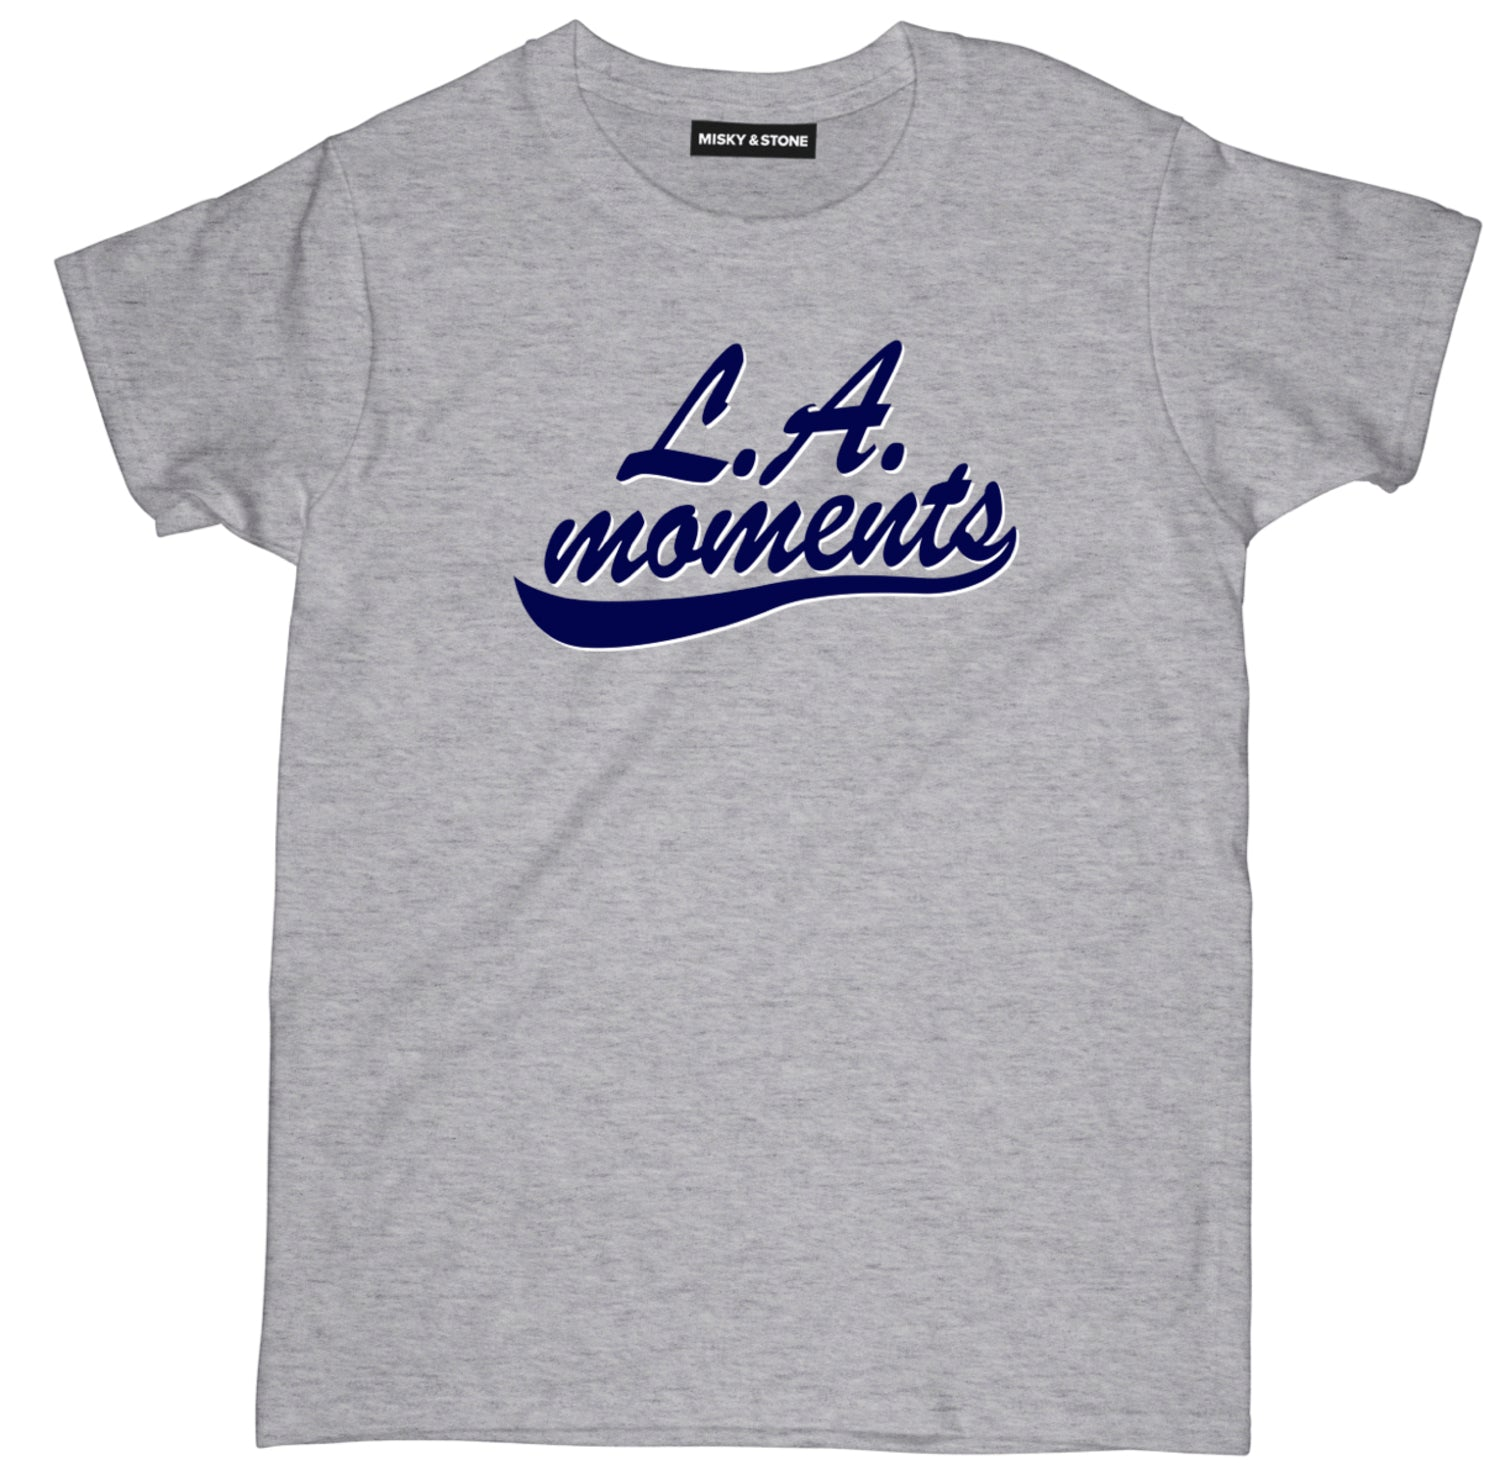 l.a. moments t shirt, los angeles t shirt, la t shirt, la shirts, l.a moments shirt, california t shirt, cali tees, cali shirts, los angeles tees,